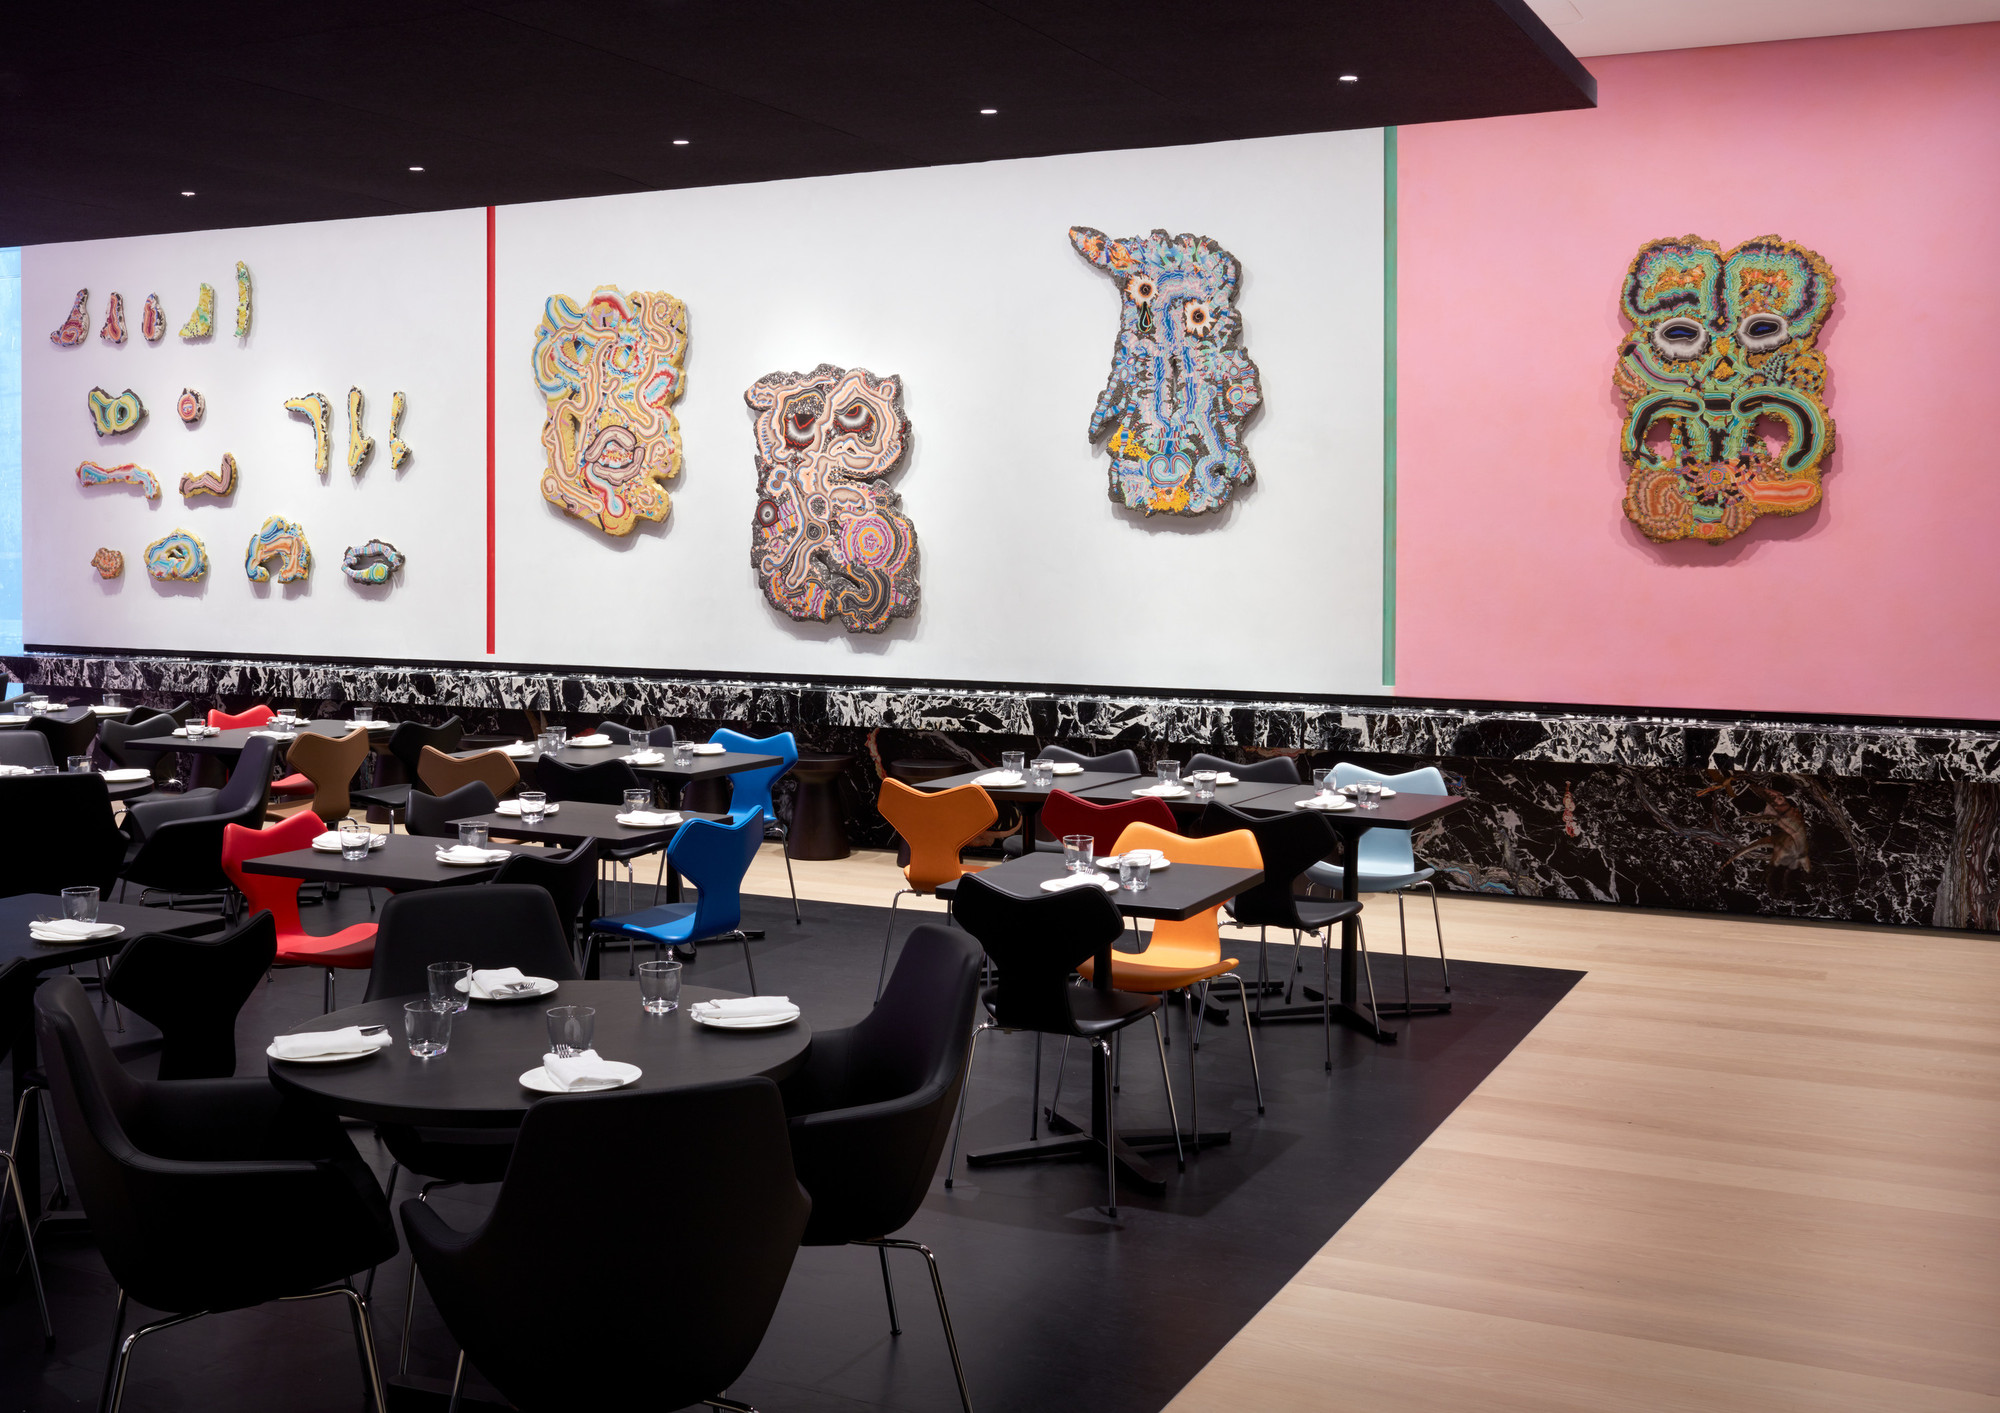 Installation view of the commission Fossil Psychics for Christa. 2019. Stucco-marmo, tempera, Oracal 8300 Transparent Cal 089, vinyl, and Venetian plaster. Digital Image © 2019 The Museum of Modern Art, New York. Photo: Heidi Bohnenkamp